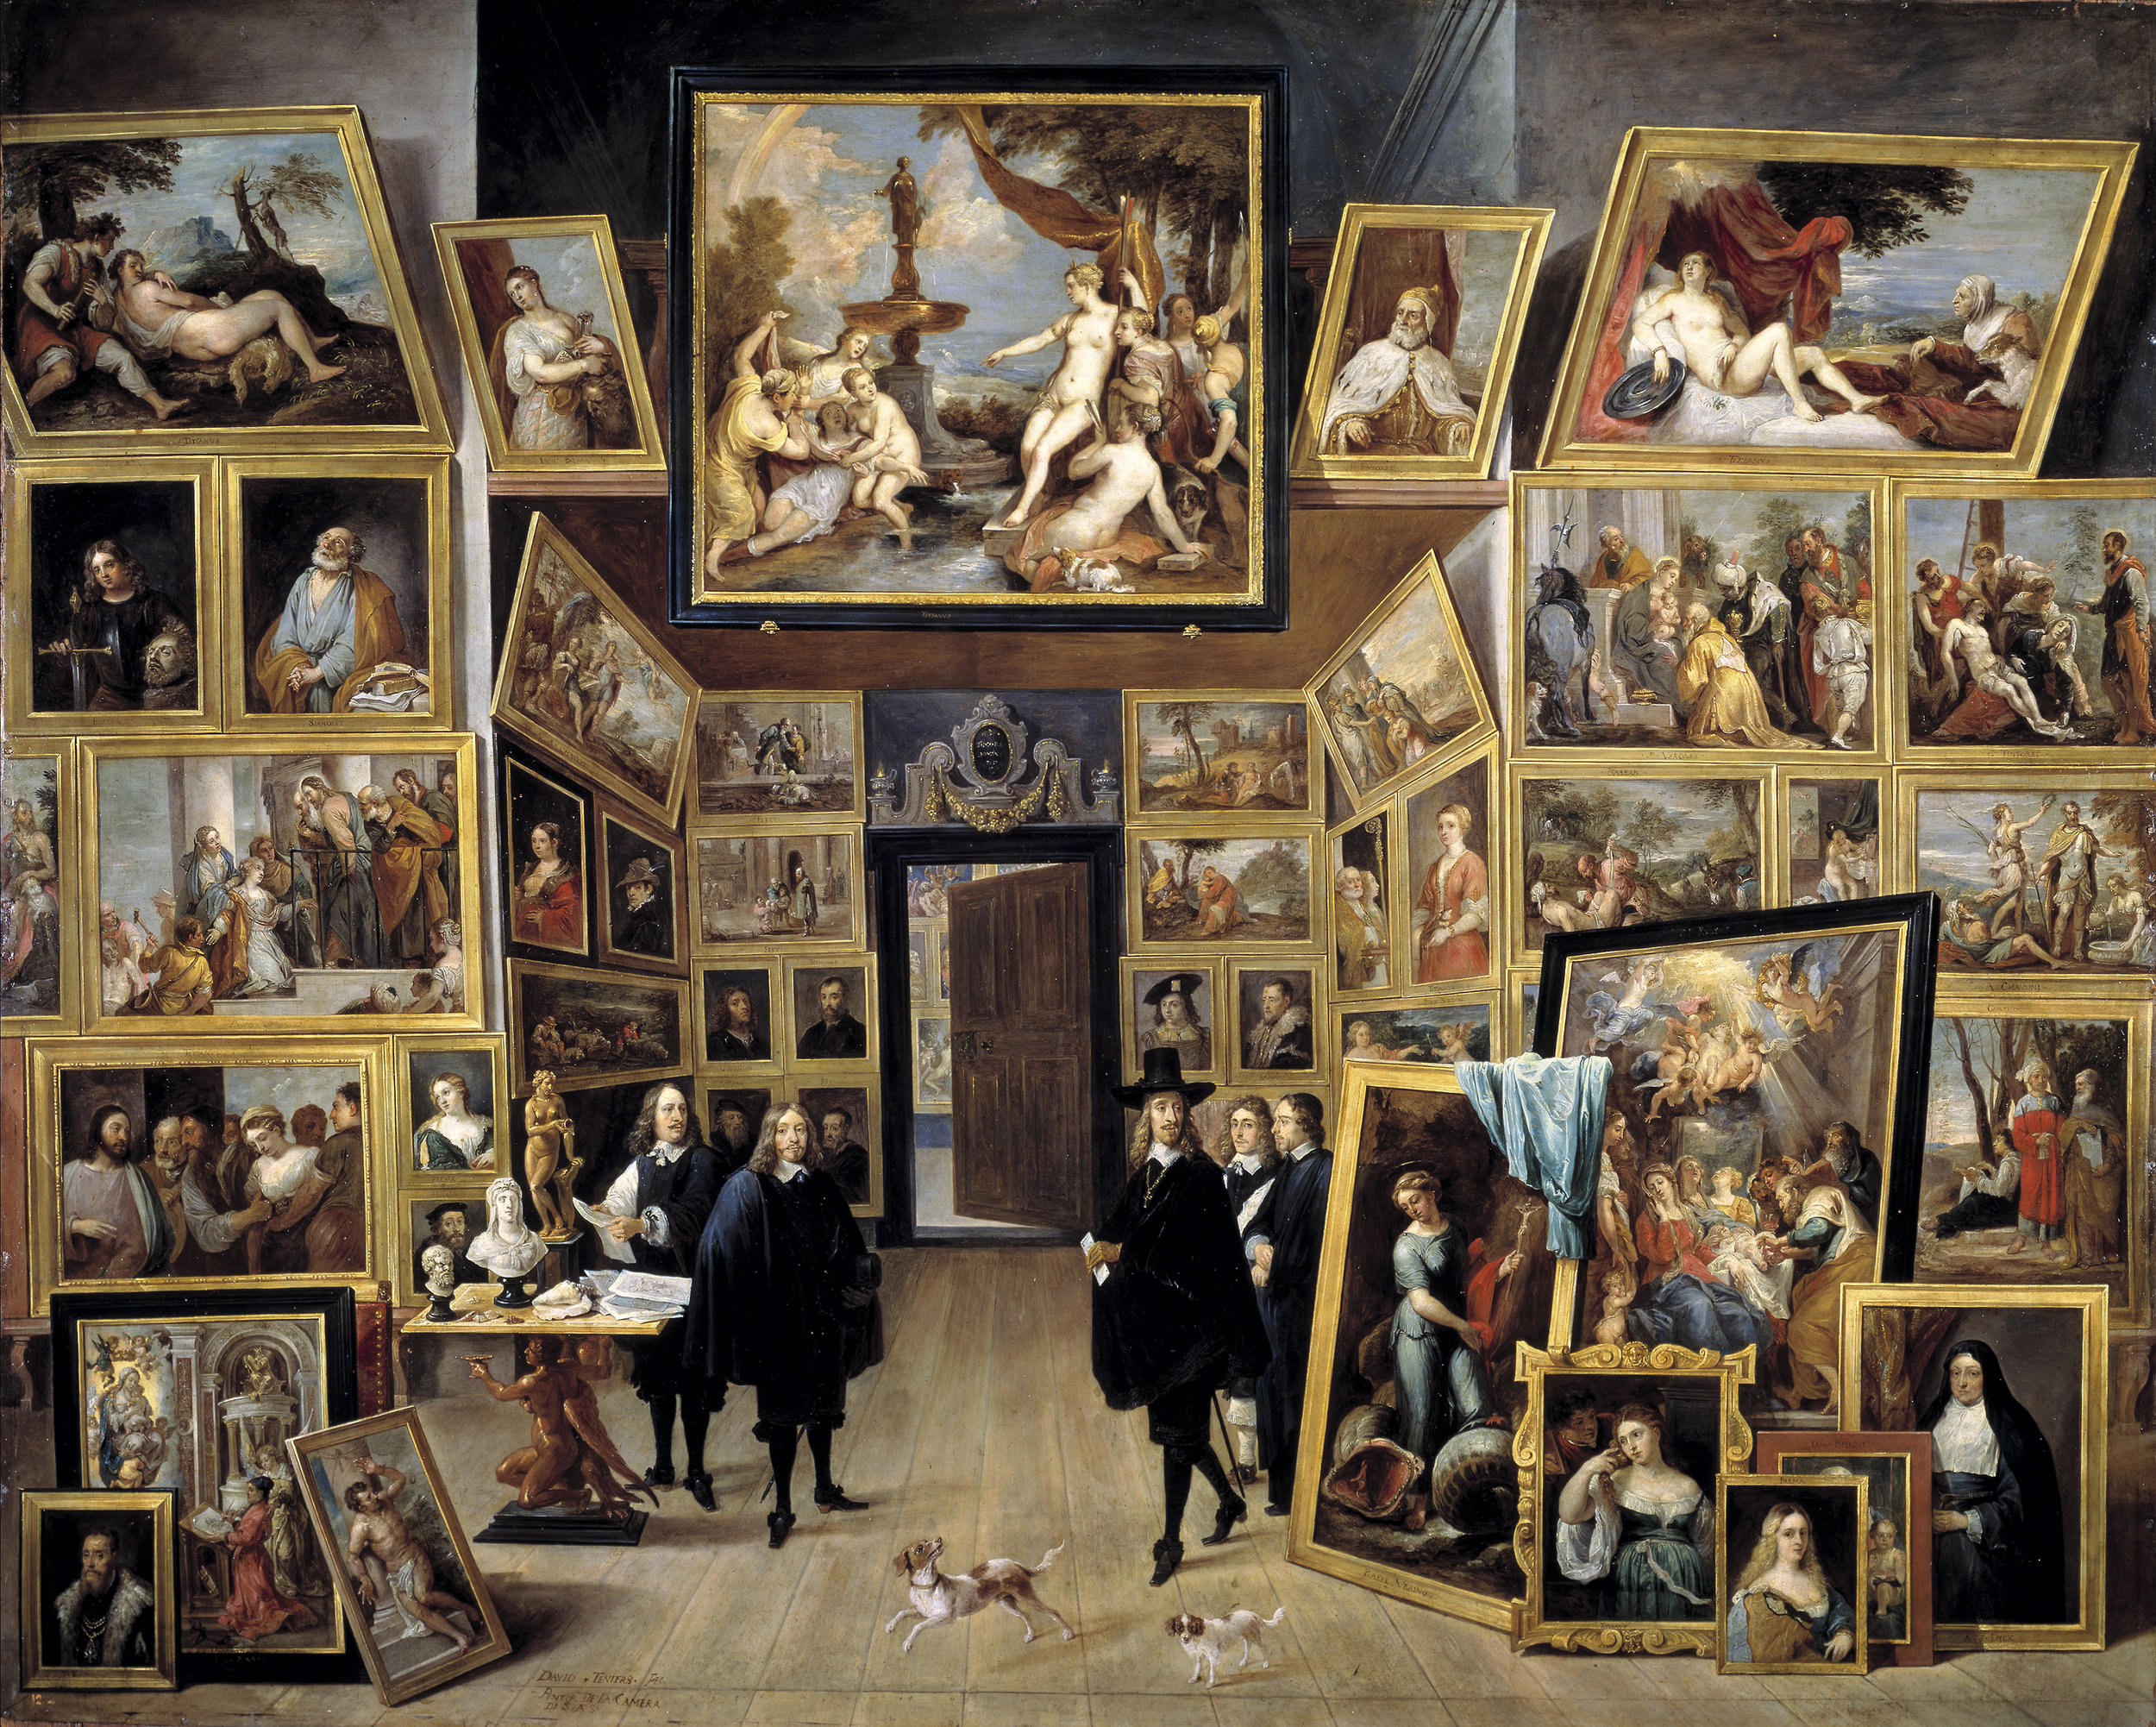 Archduke Leopold Wilhelm of Austria in his gallery. Painted by David Teniers, 1650.